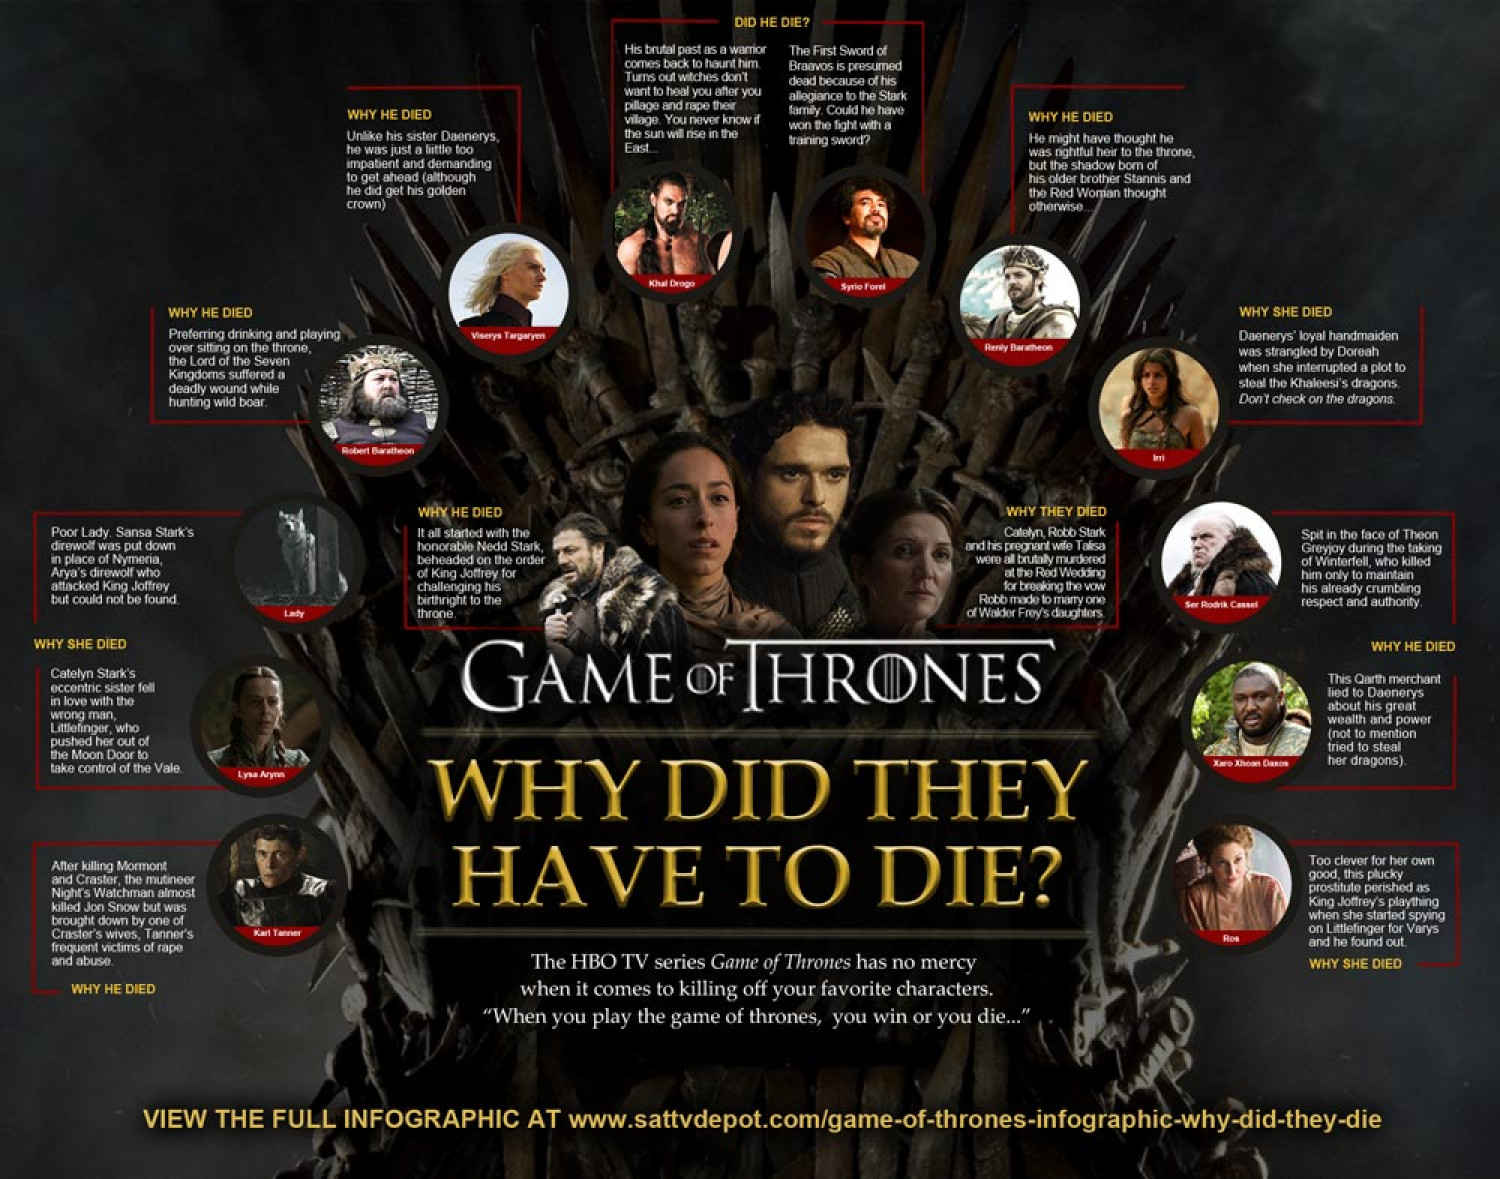 Game of Thrones: Why Did They Have to Die? Infographic